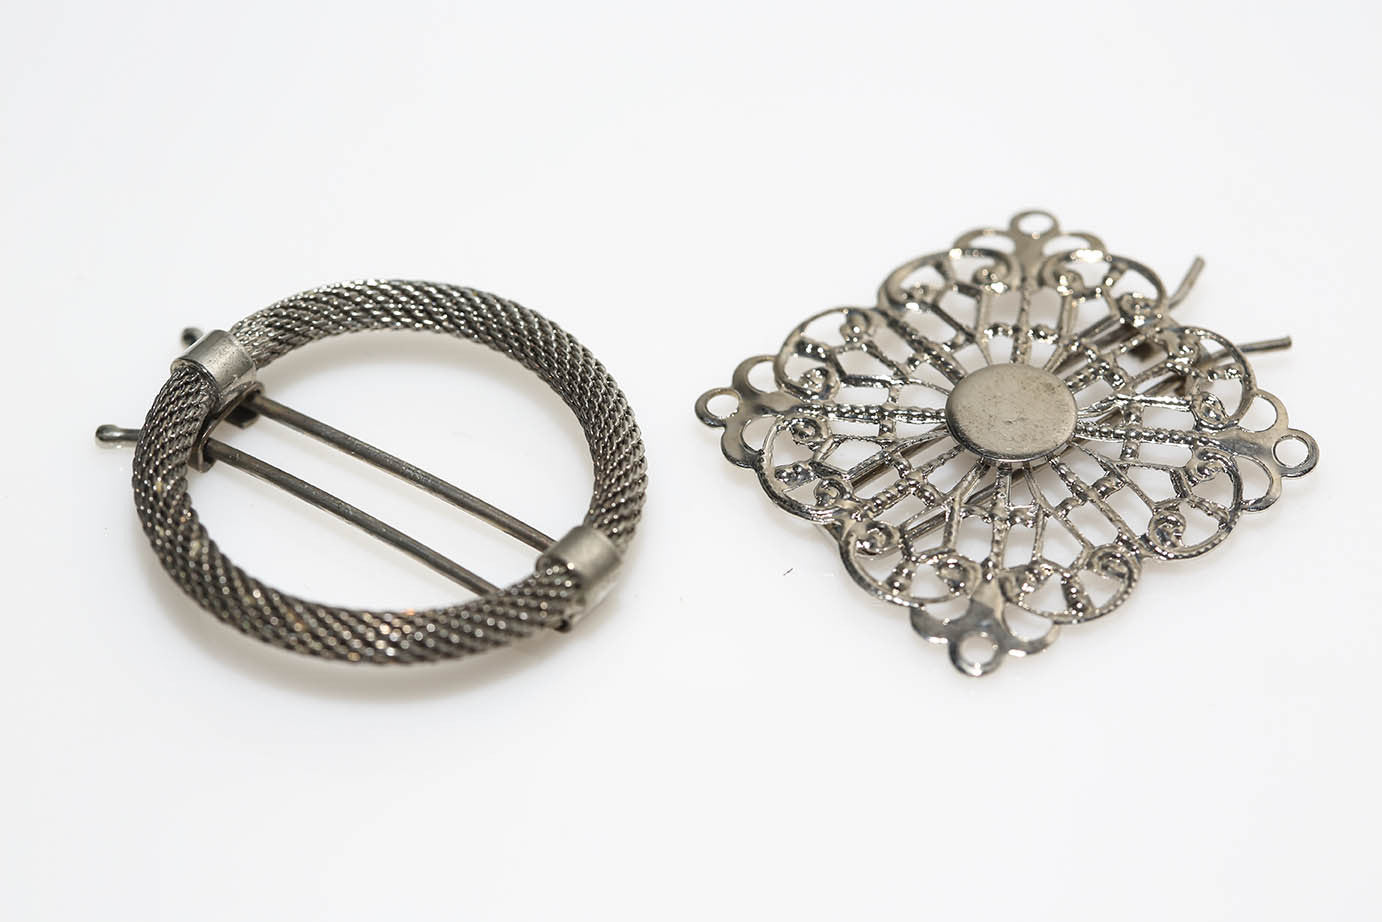 Barrette Duo in Silver